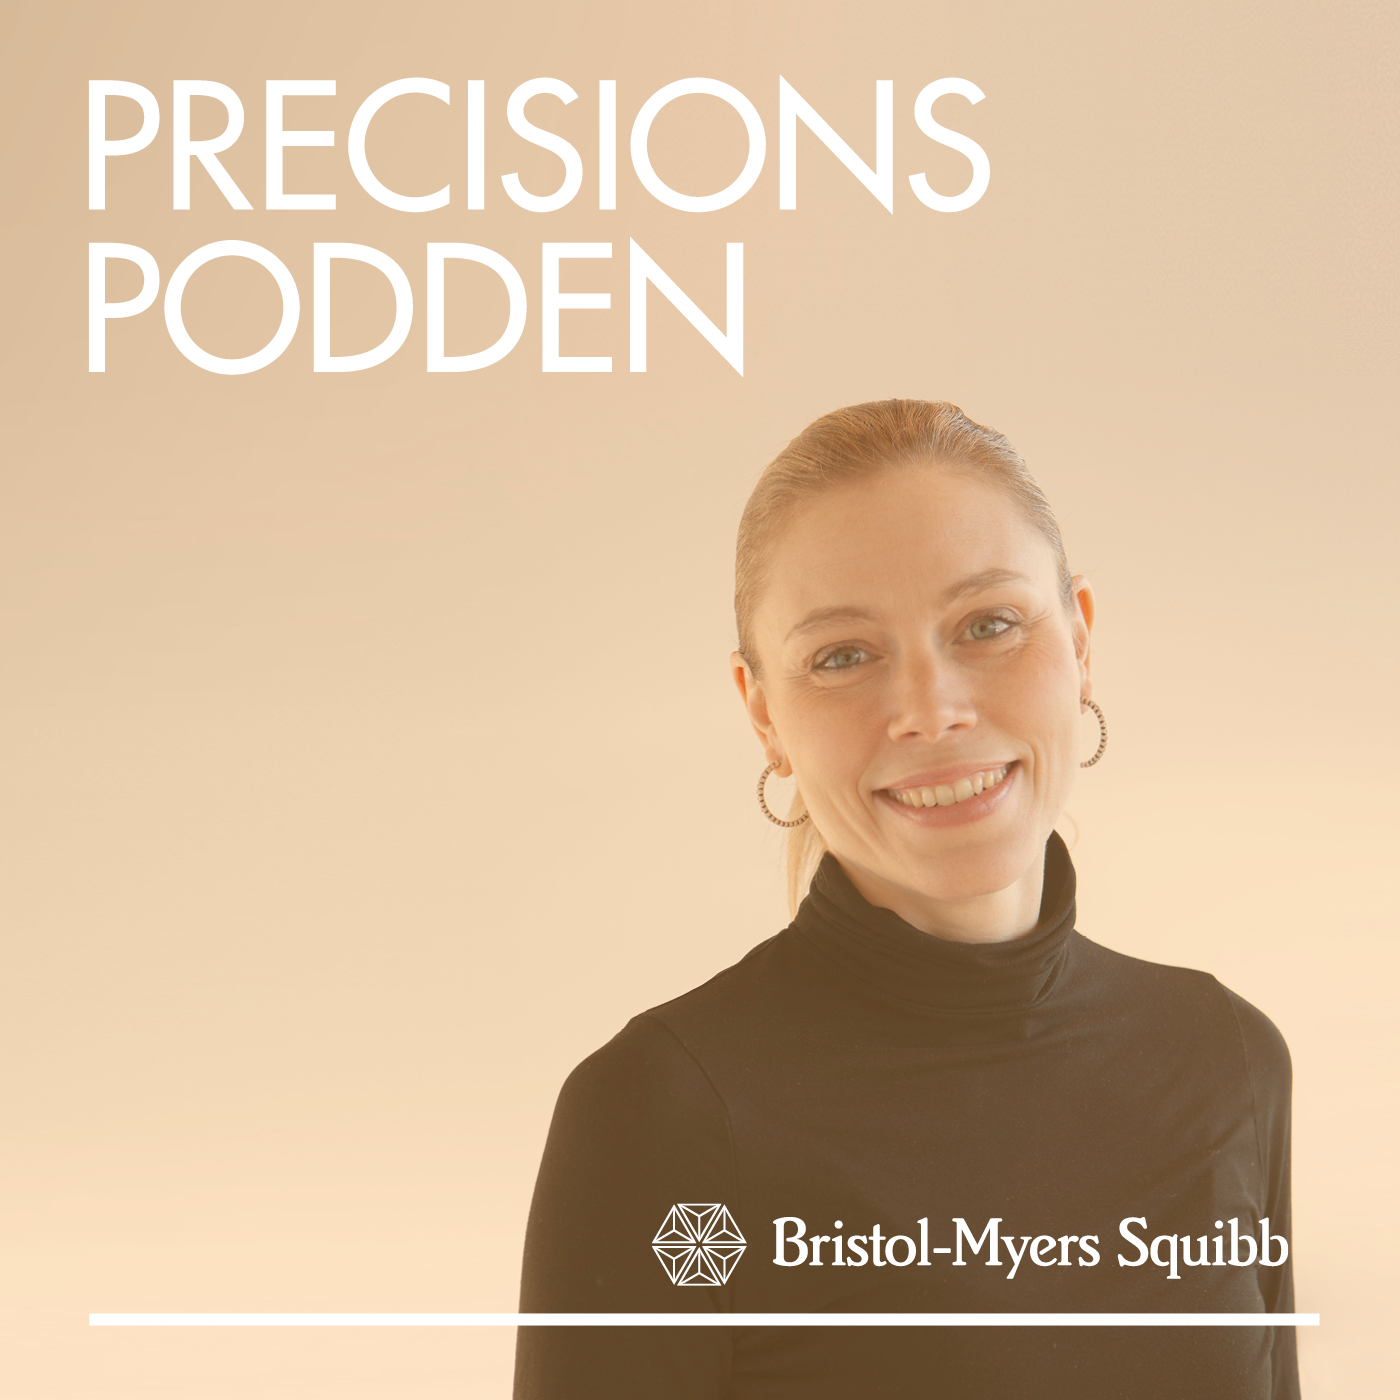 Precisionspodden